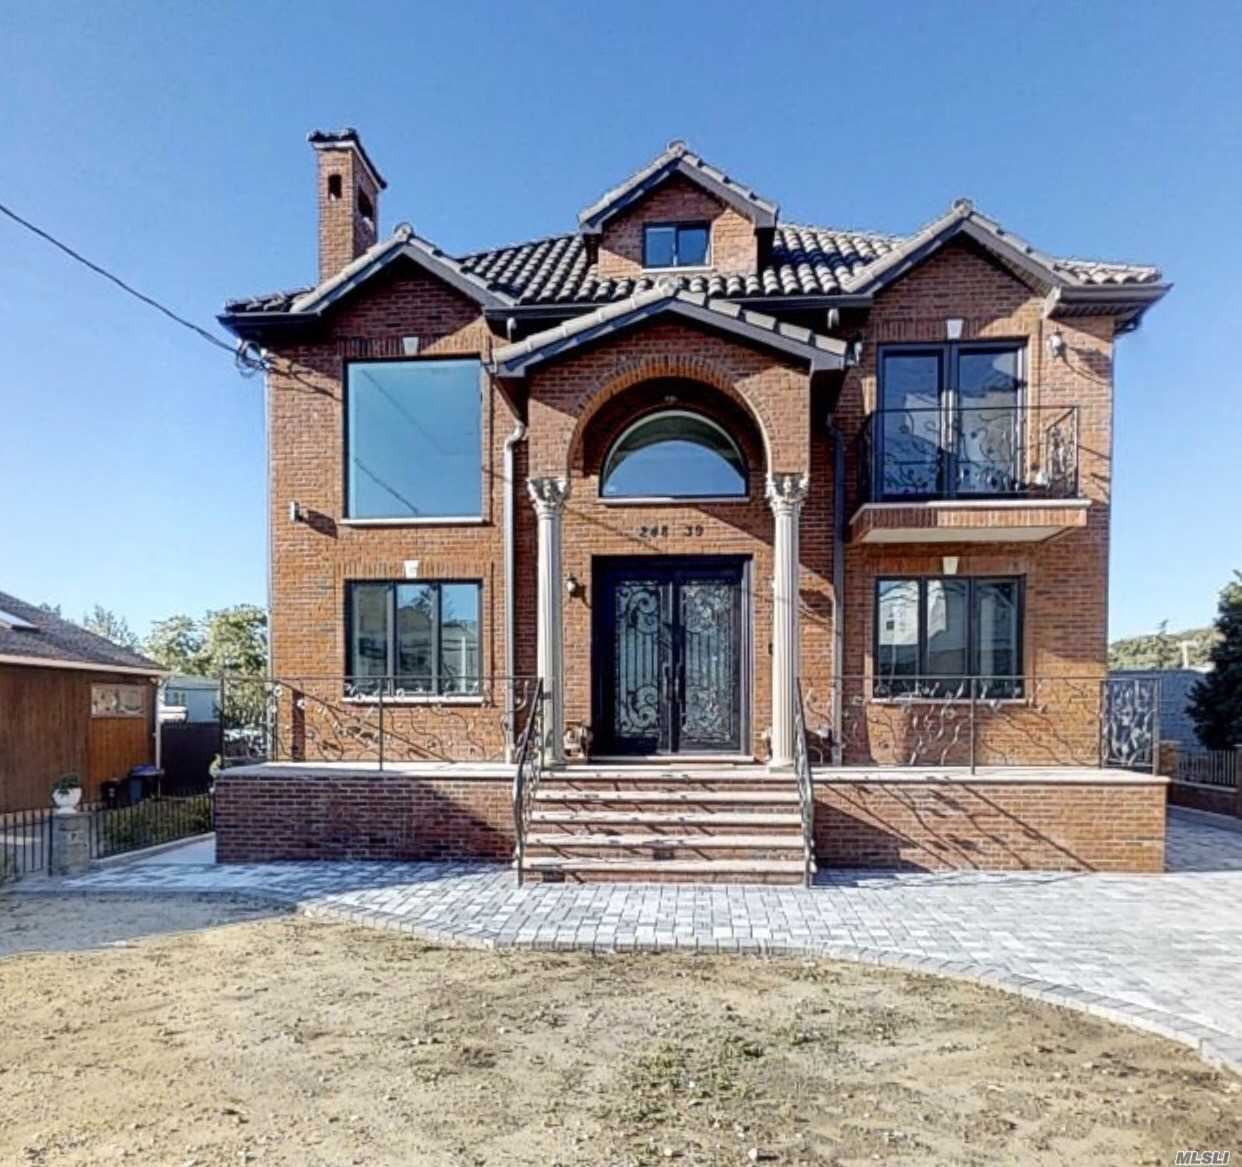 Brand New Construction Property With Heating Floor Material